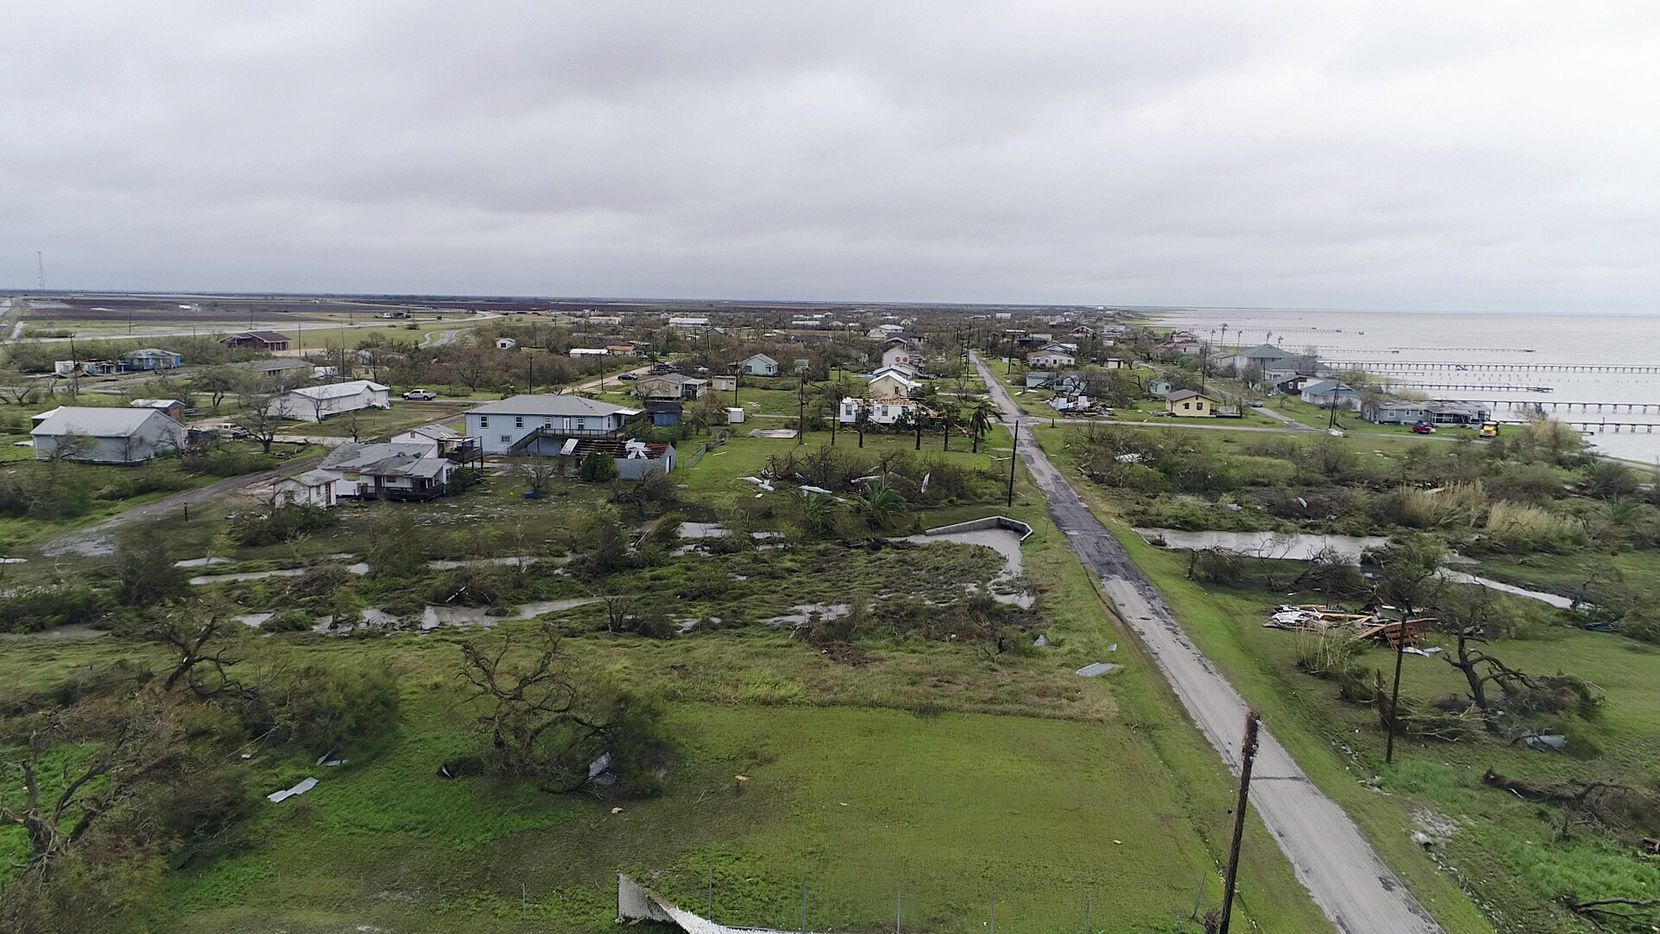 This aerial image shows damage from Hurricane Harvey on Monday, Aug. 28, 2017, in Bayside, Texas. Harvey hit the coast as a Category 4 hurricane. (DroneBase via AP)